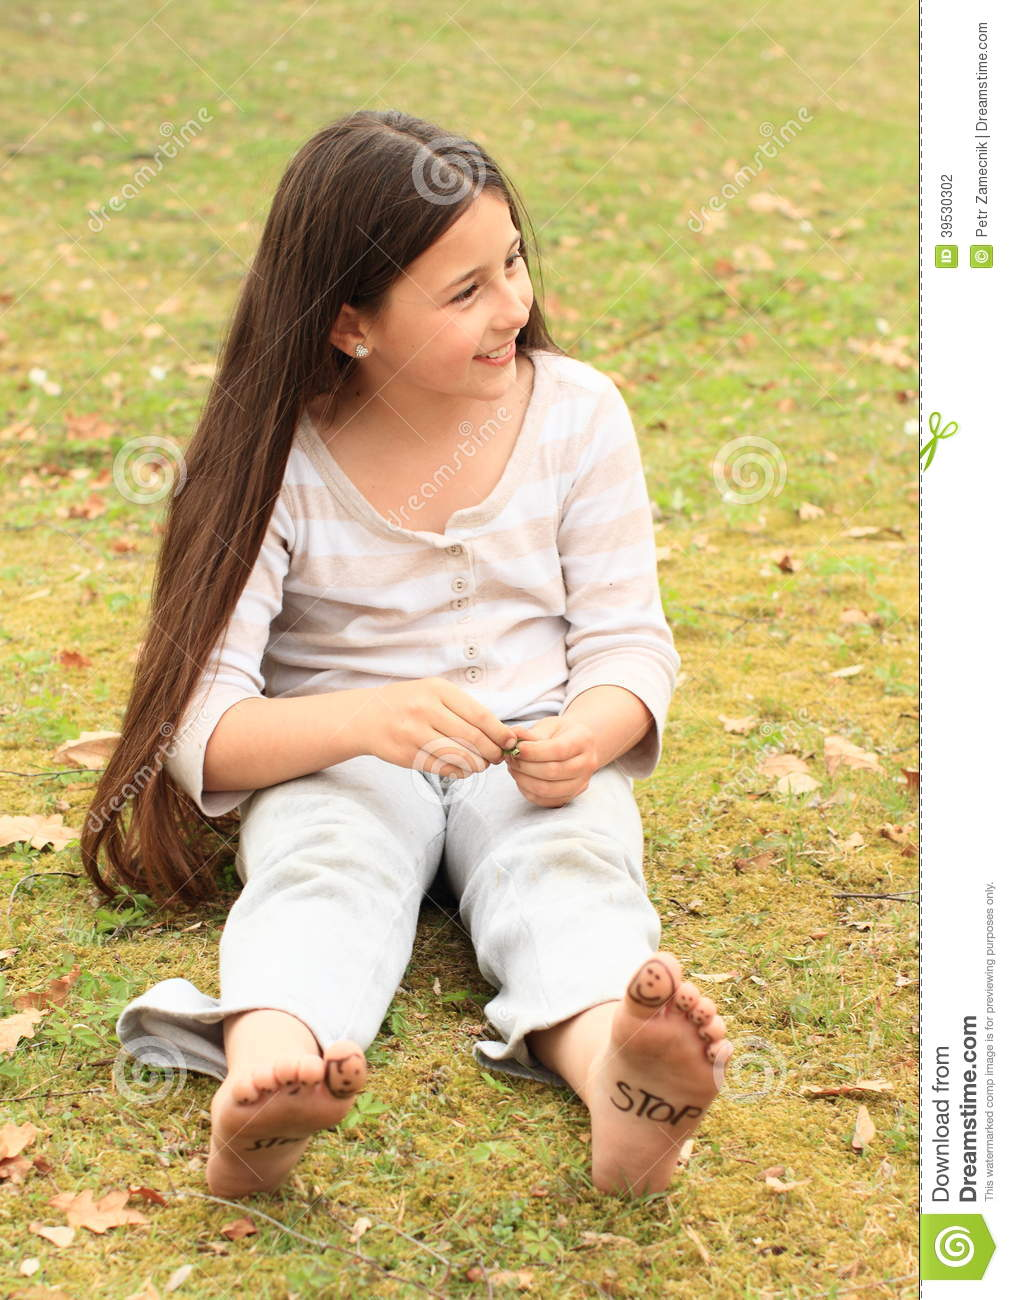 girl with smileys on toes and sign stop on soles stock photo - image